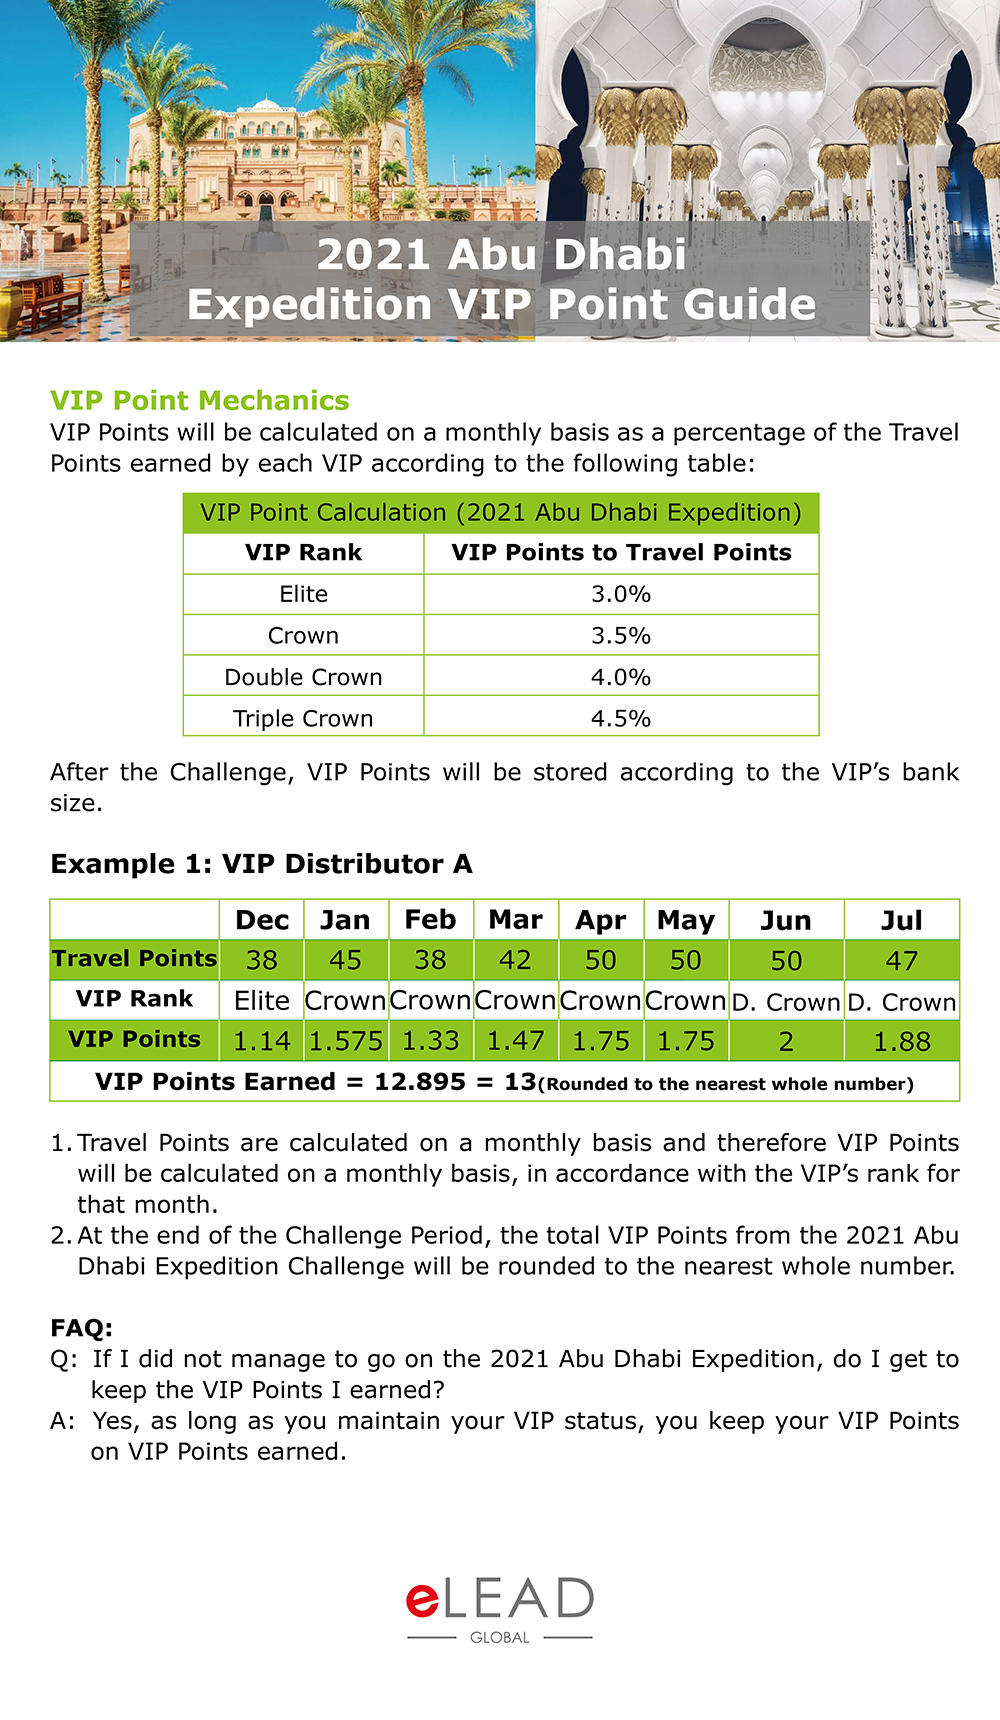 2021 Abu Dhabi Expedition VIP Point Guide